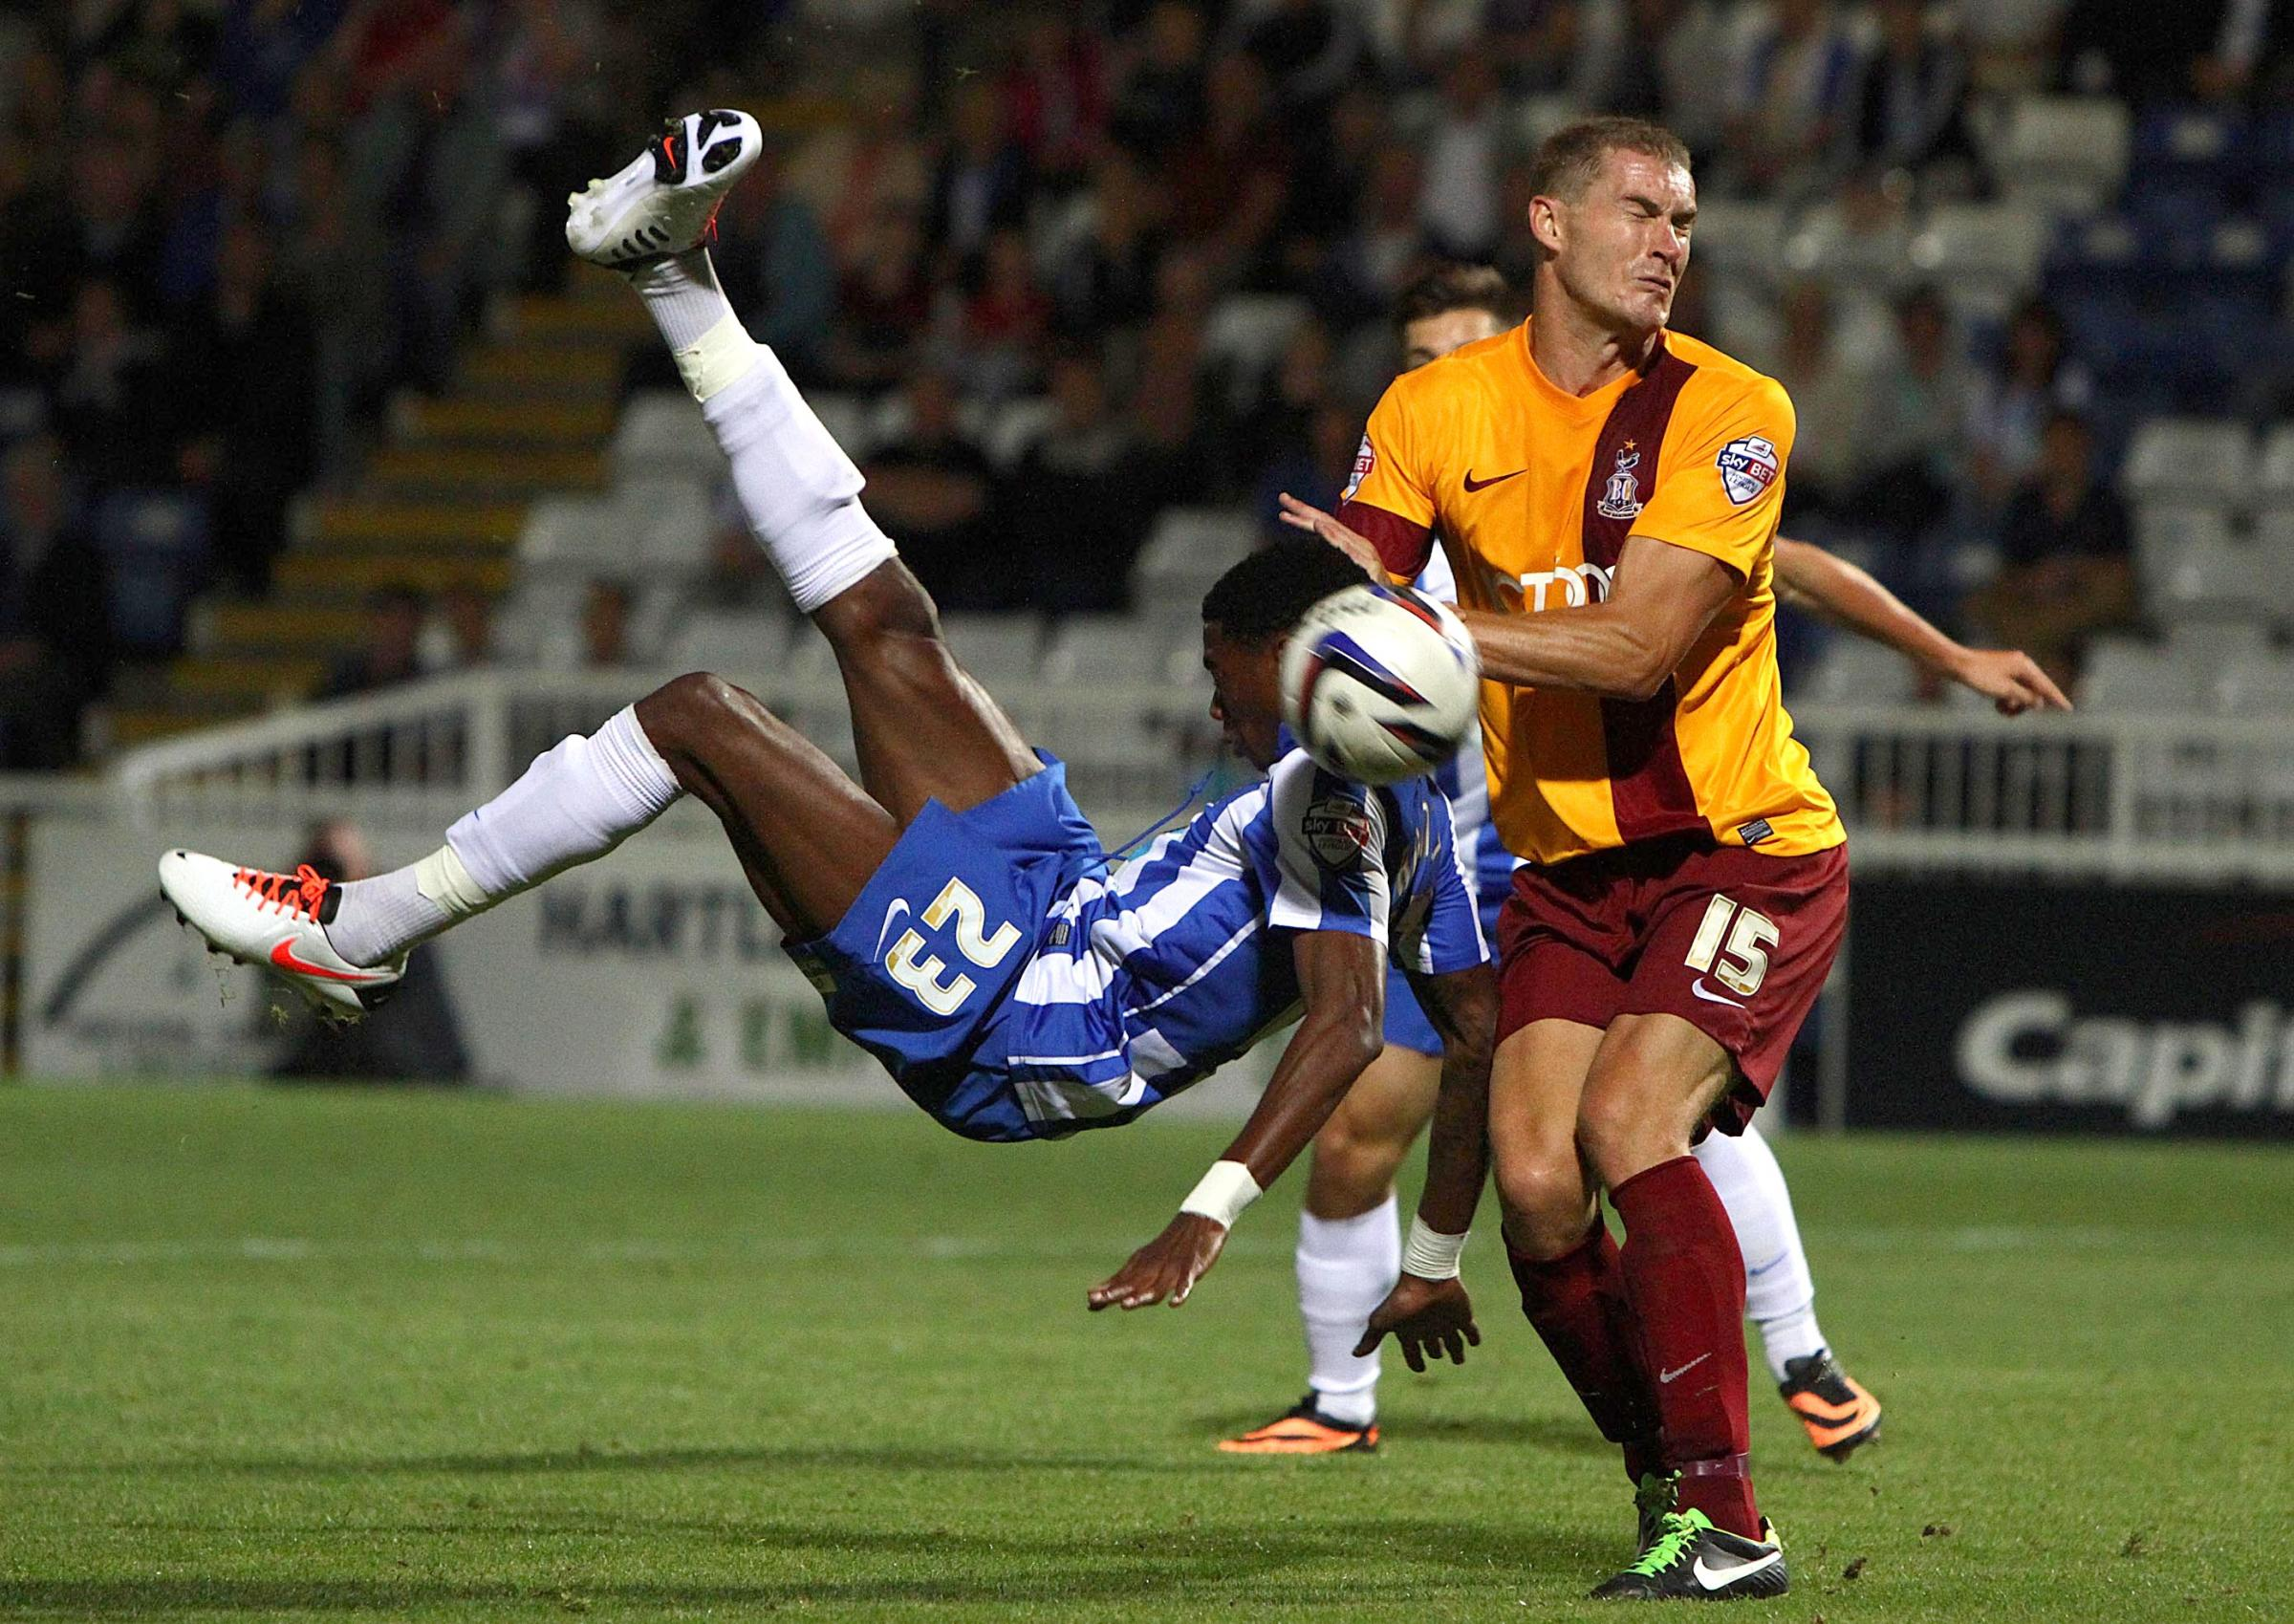 ACROBATIC EFFORT: Nialle Rodney volleys Hartlepool into a 5-0 lead